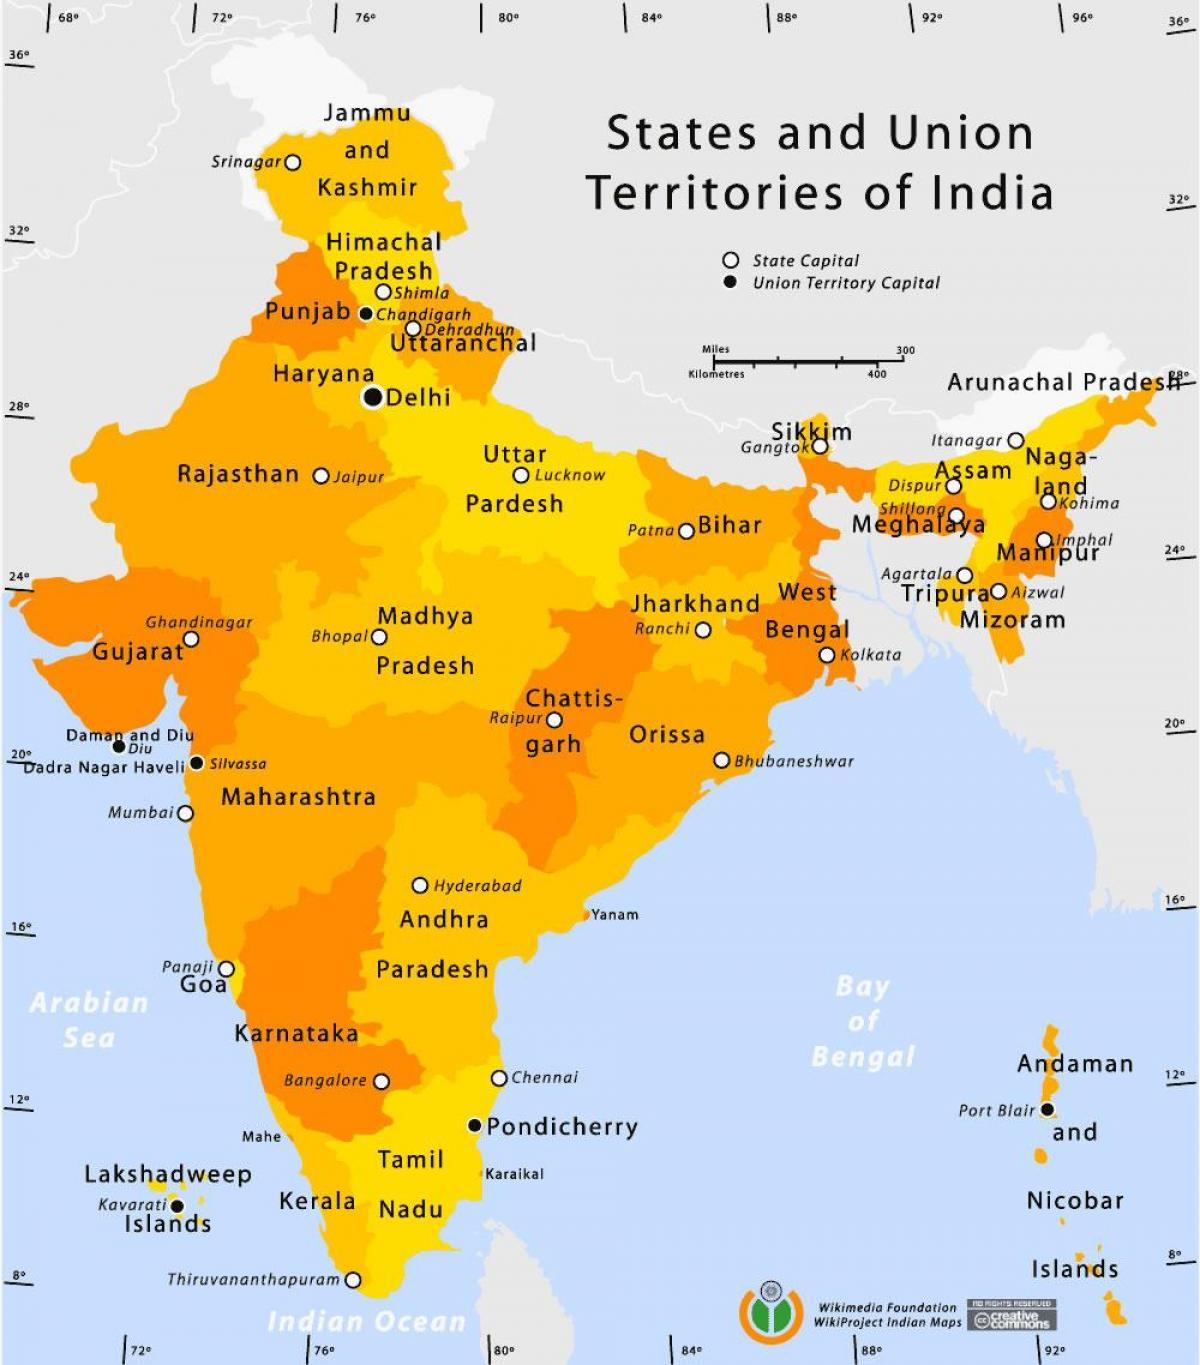 India states map - India map states (Southern Asia - Asia) on india bali map, india se, india map usa, india russia map, india on map, india yellow river map, india south asia, india continent map, india australia map, india heart map, india europe map, india region map, india population growth map, india in asia, mughal empire india map, tohoku japan earthquake 2011 map, india mongol empire map, india iran map, india and surrounding country map, africa map,